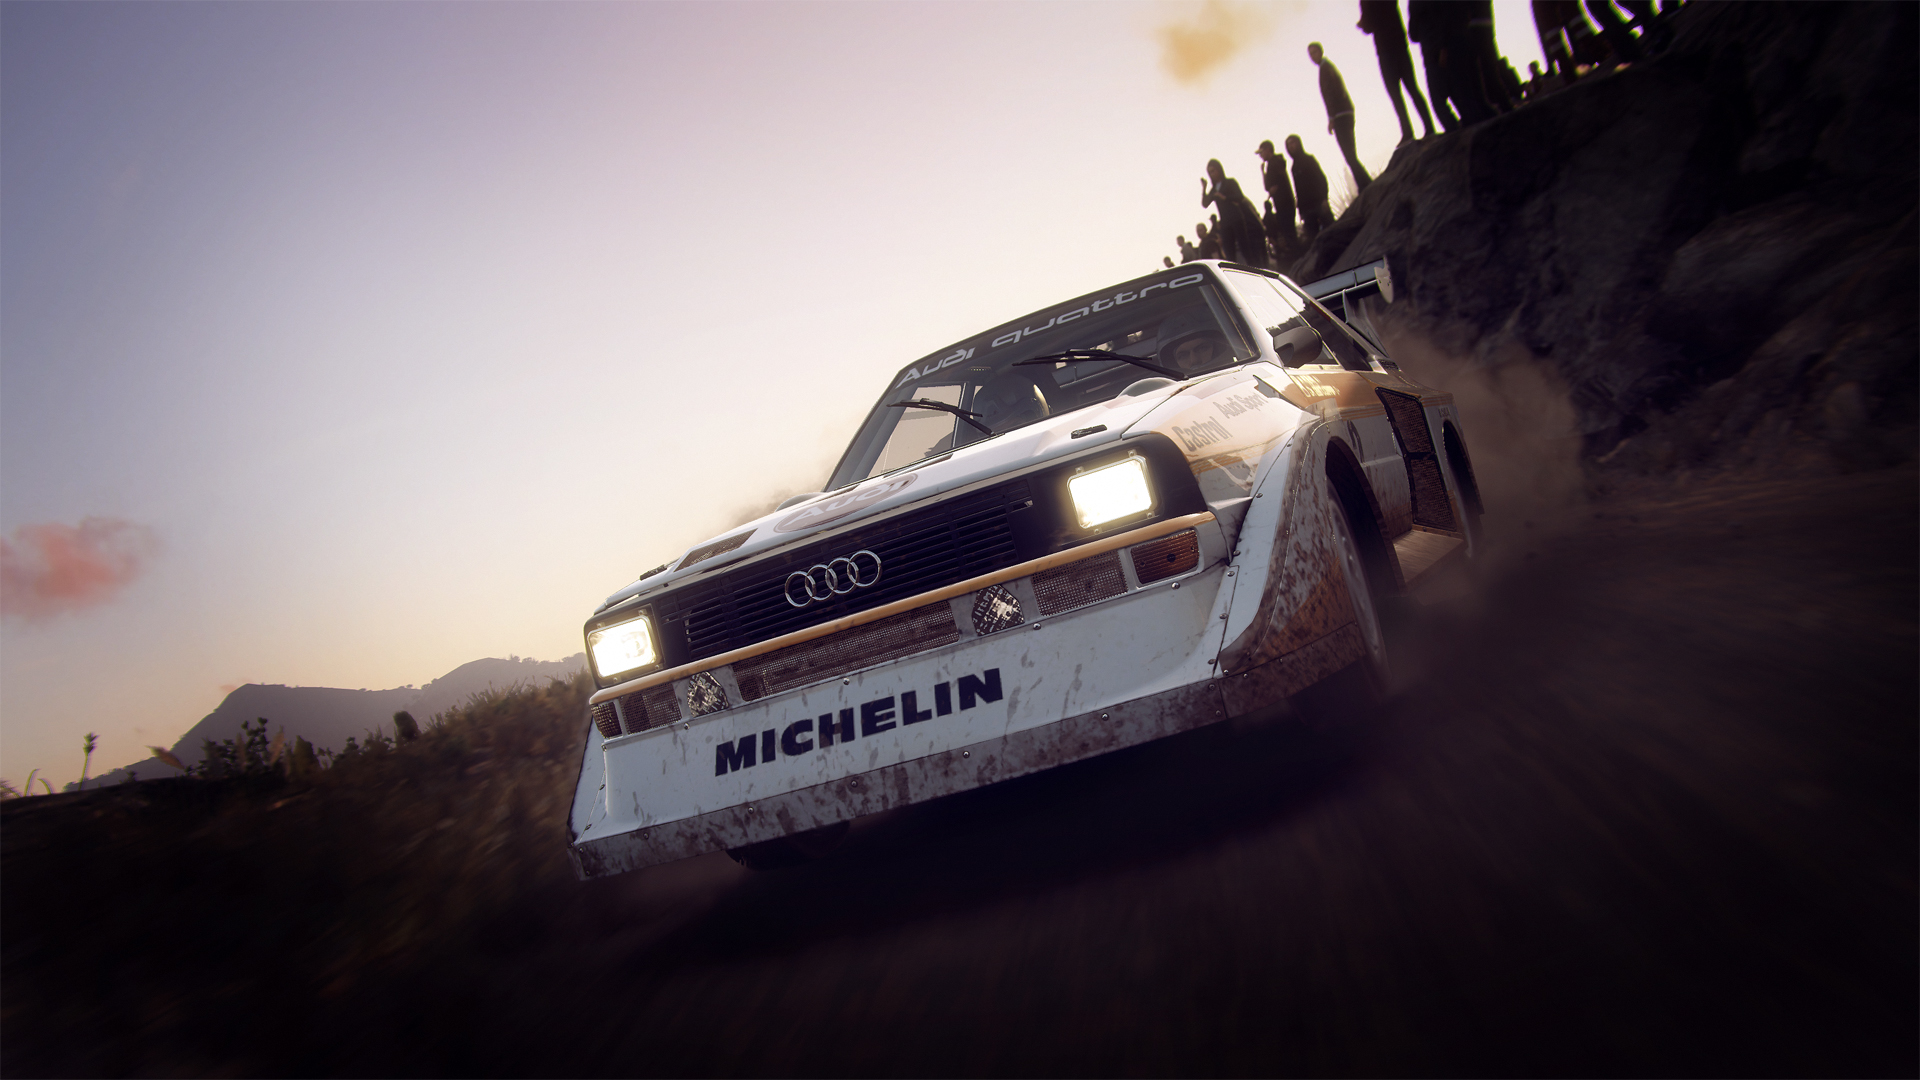 DiRT Rally 2.0 will be getting a VR update this summer screenshot